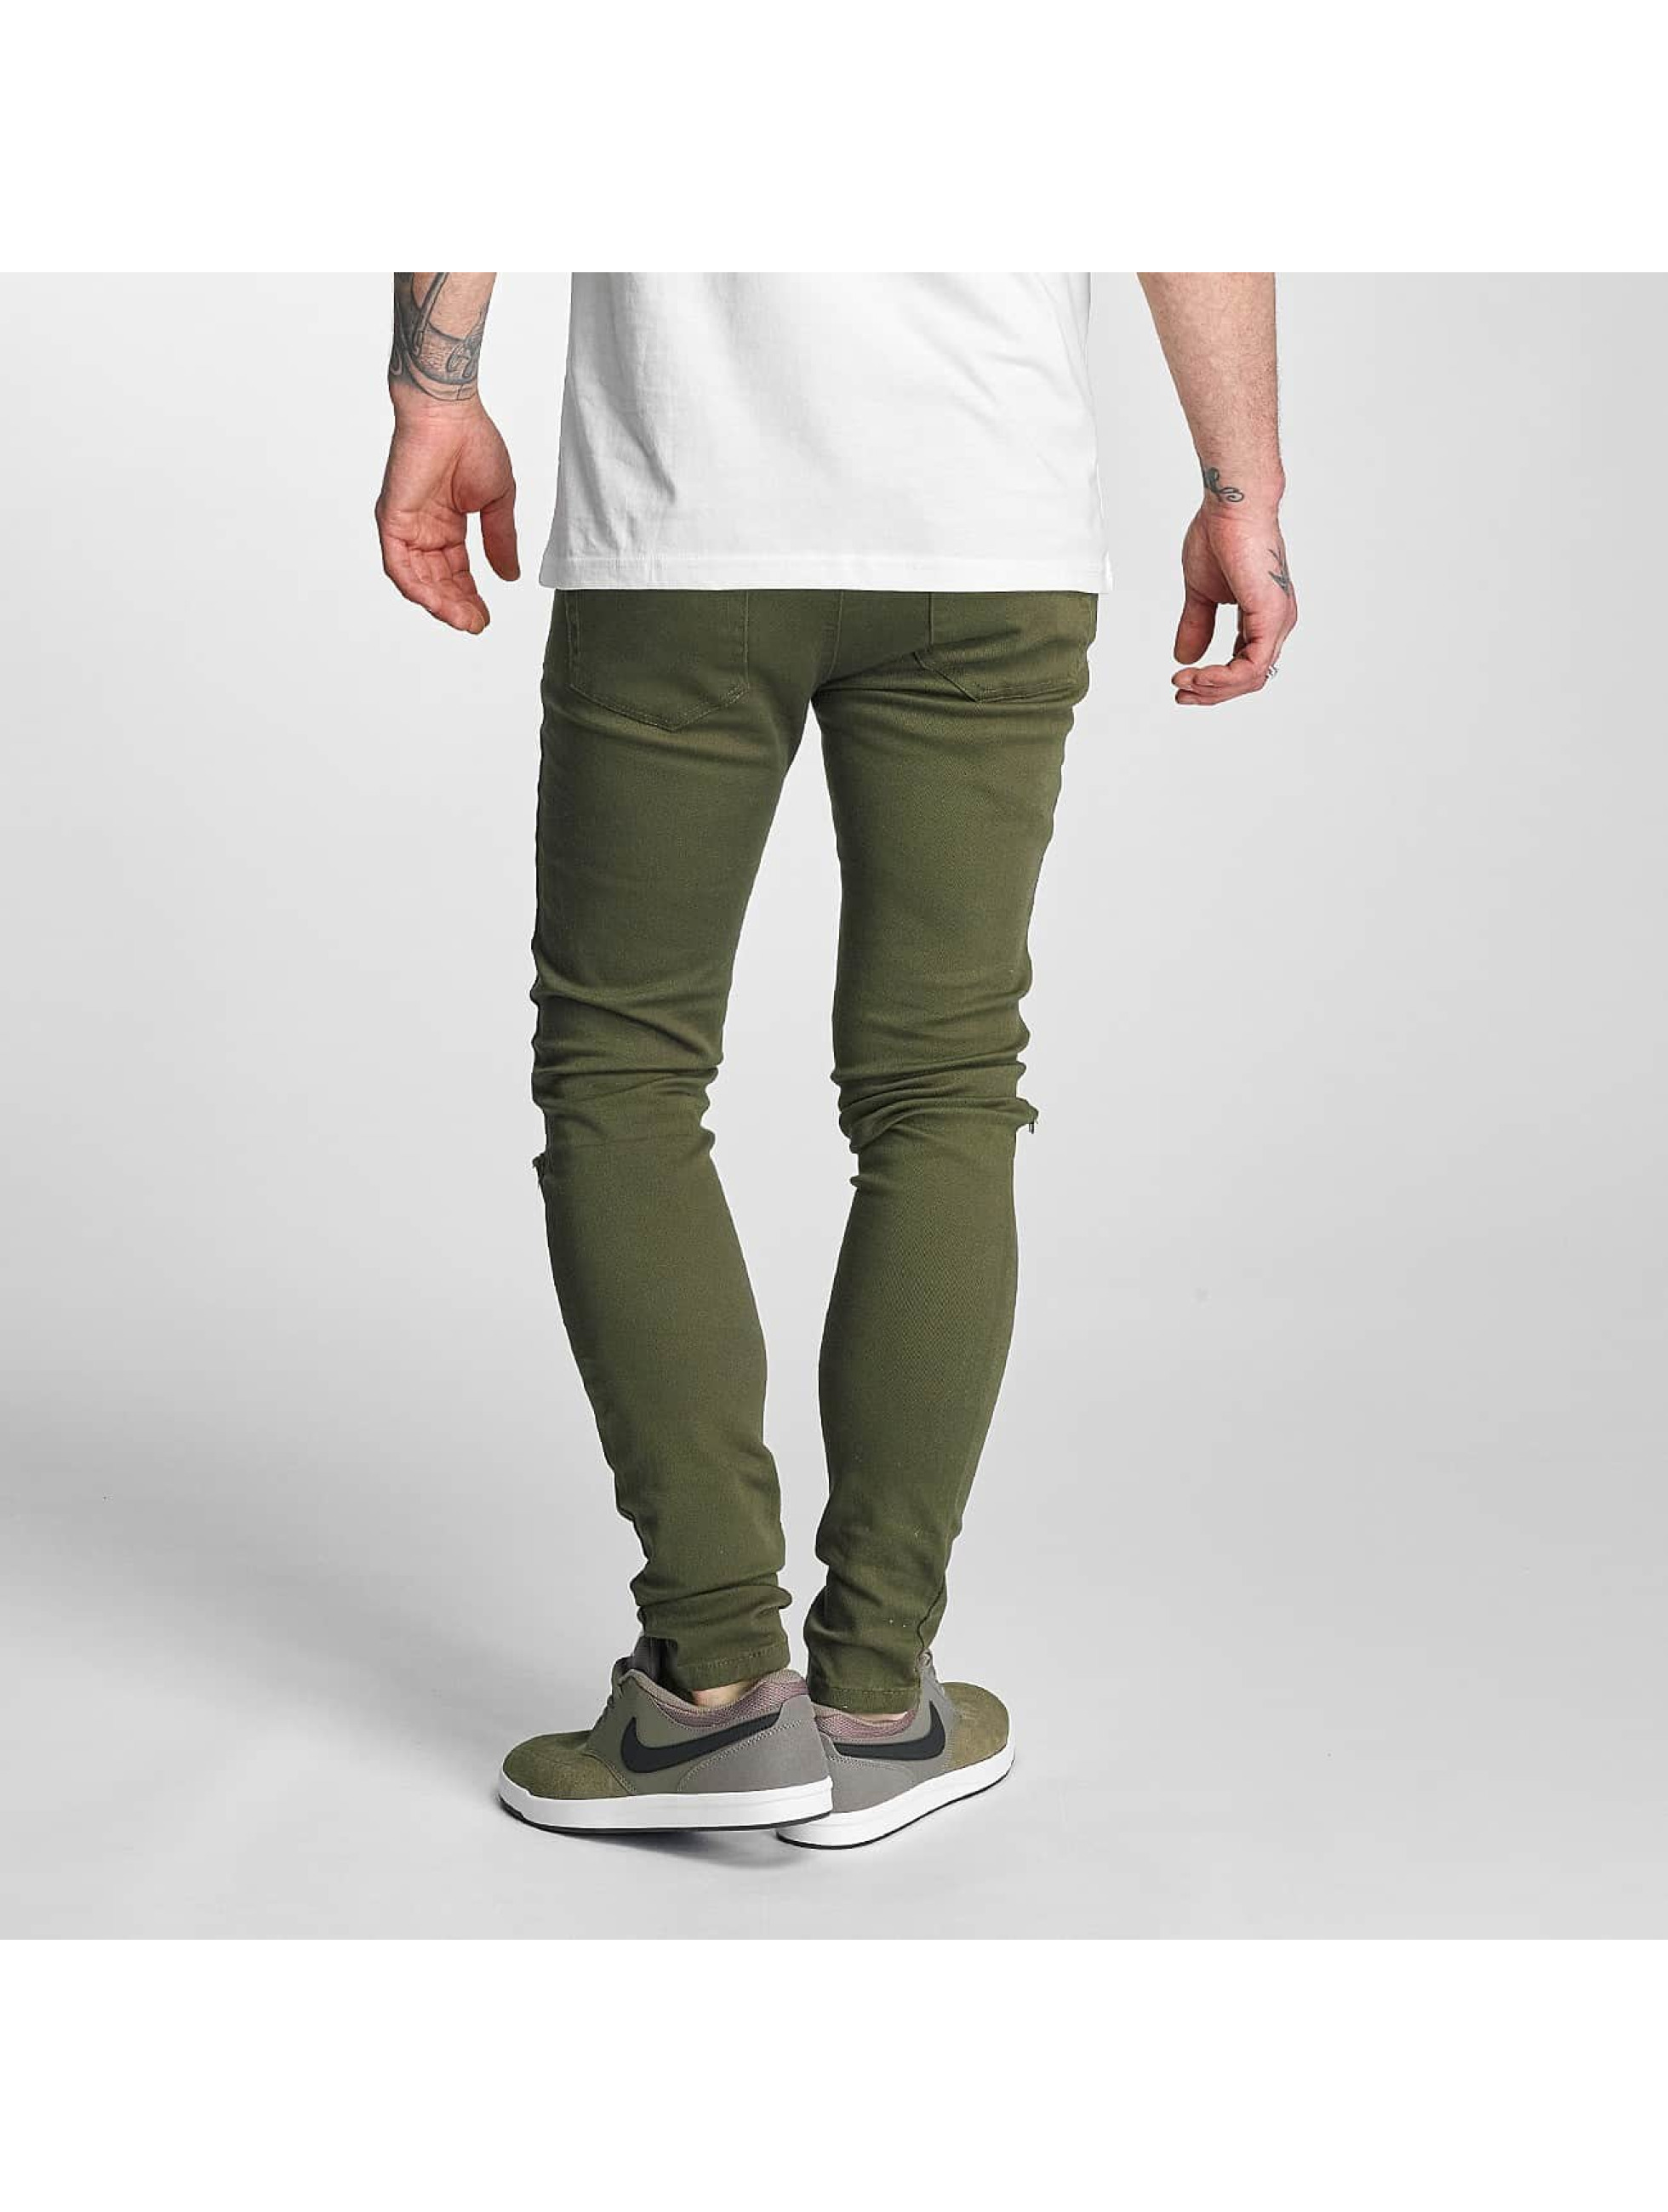 Criminal Damage Skinny Jeans Ripper olive